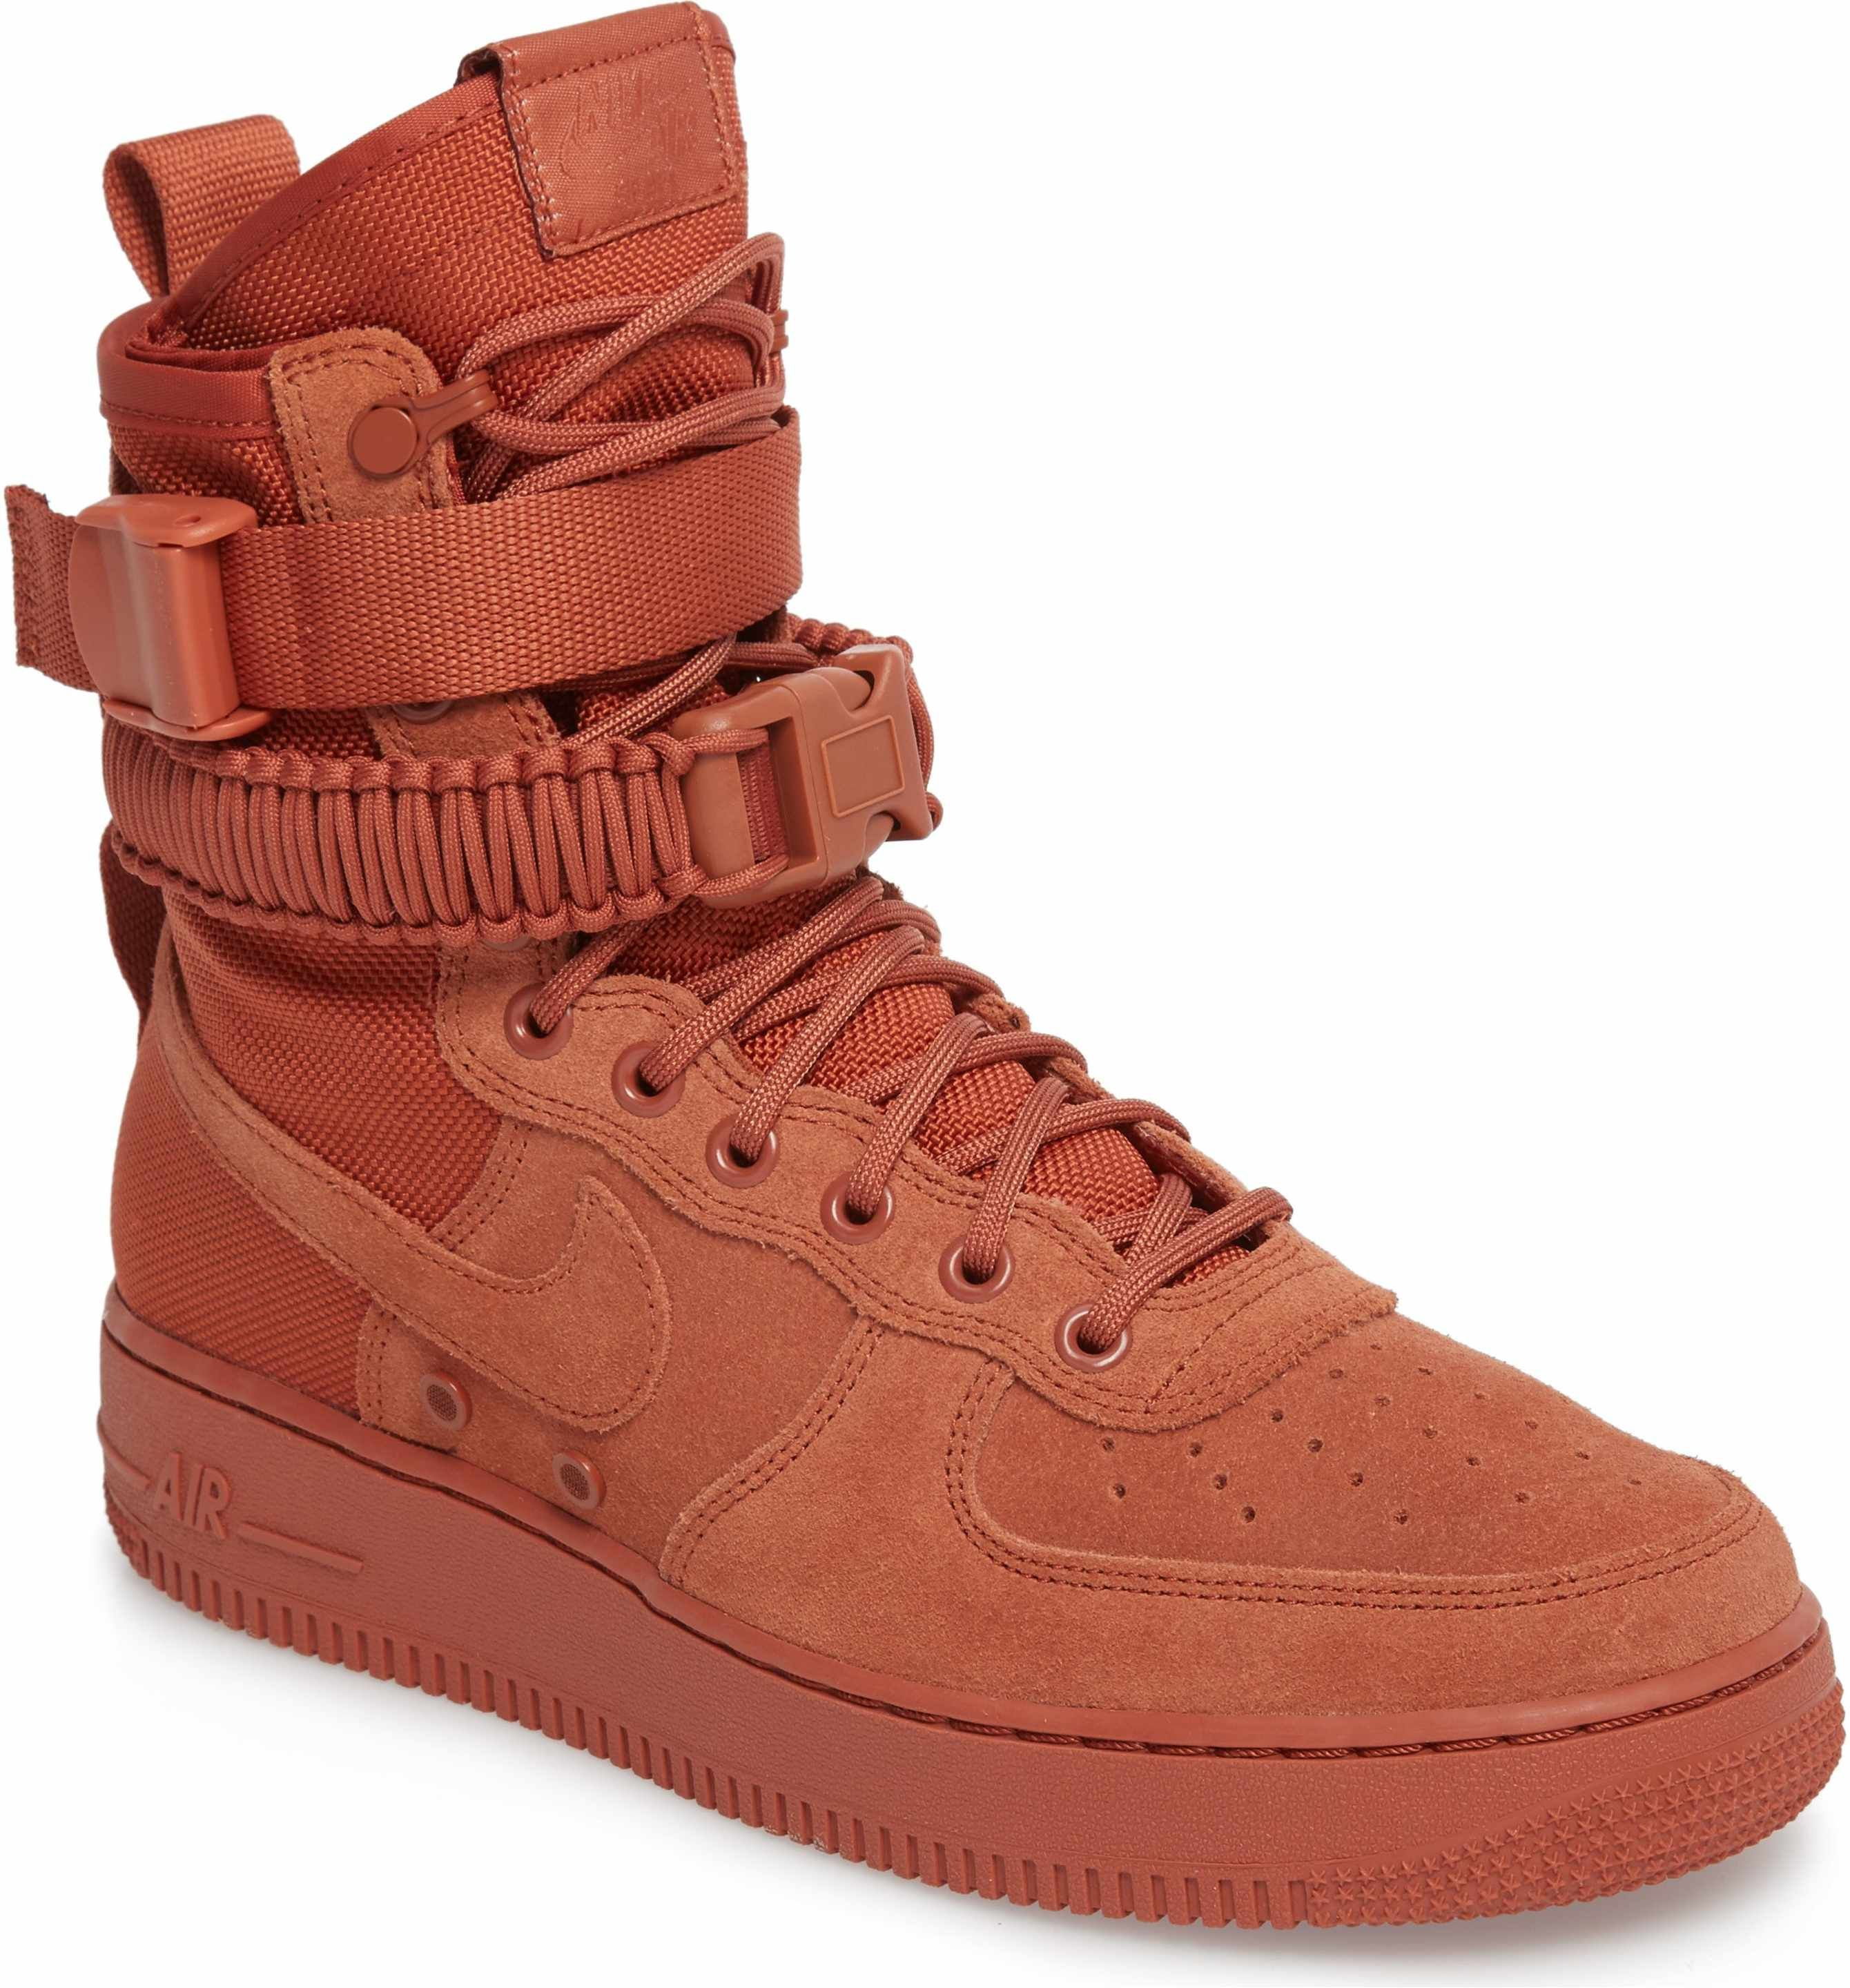 Buy The Newest Nike SF Air Force 1 High Oxy Bood 857872 600